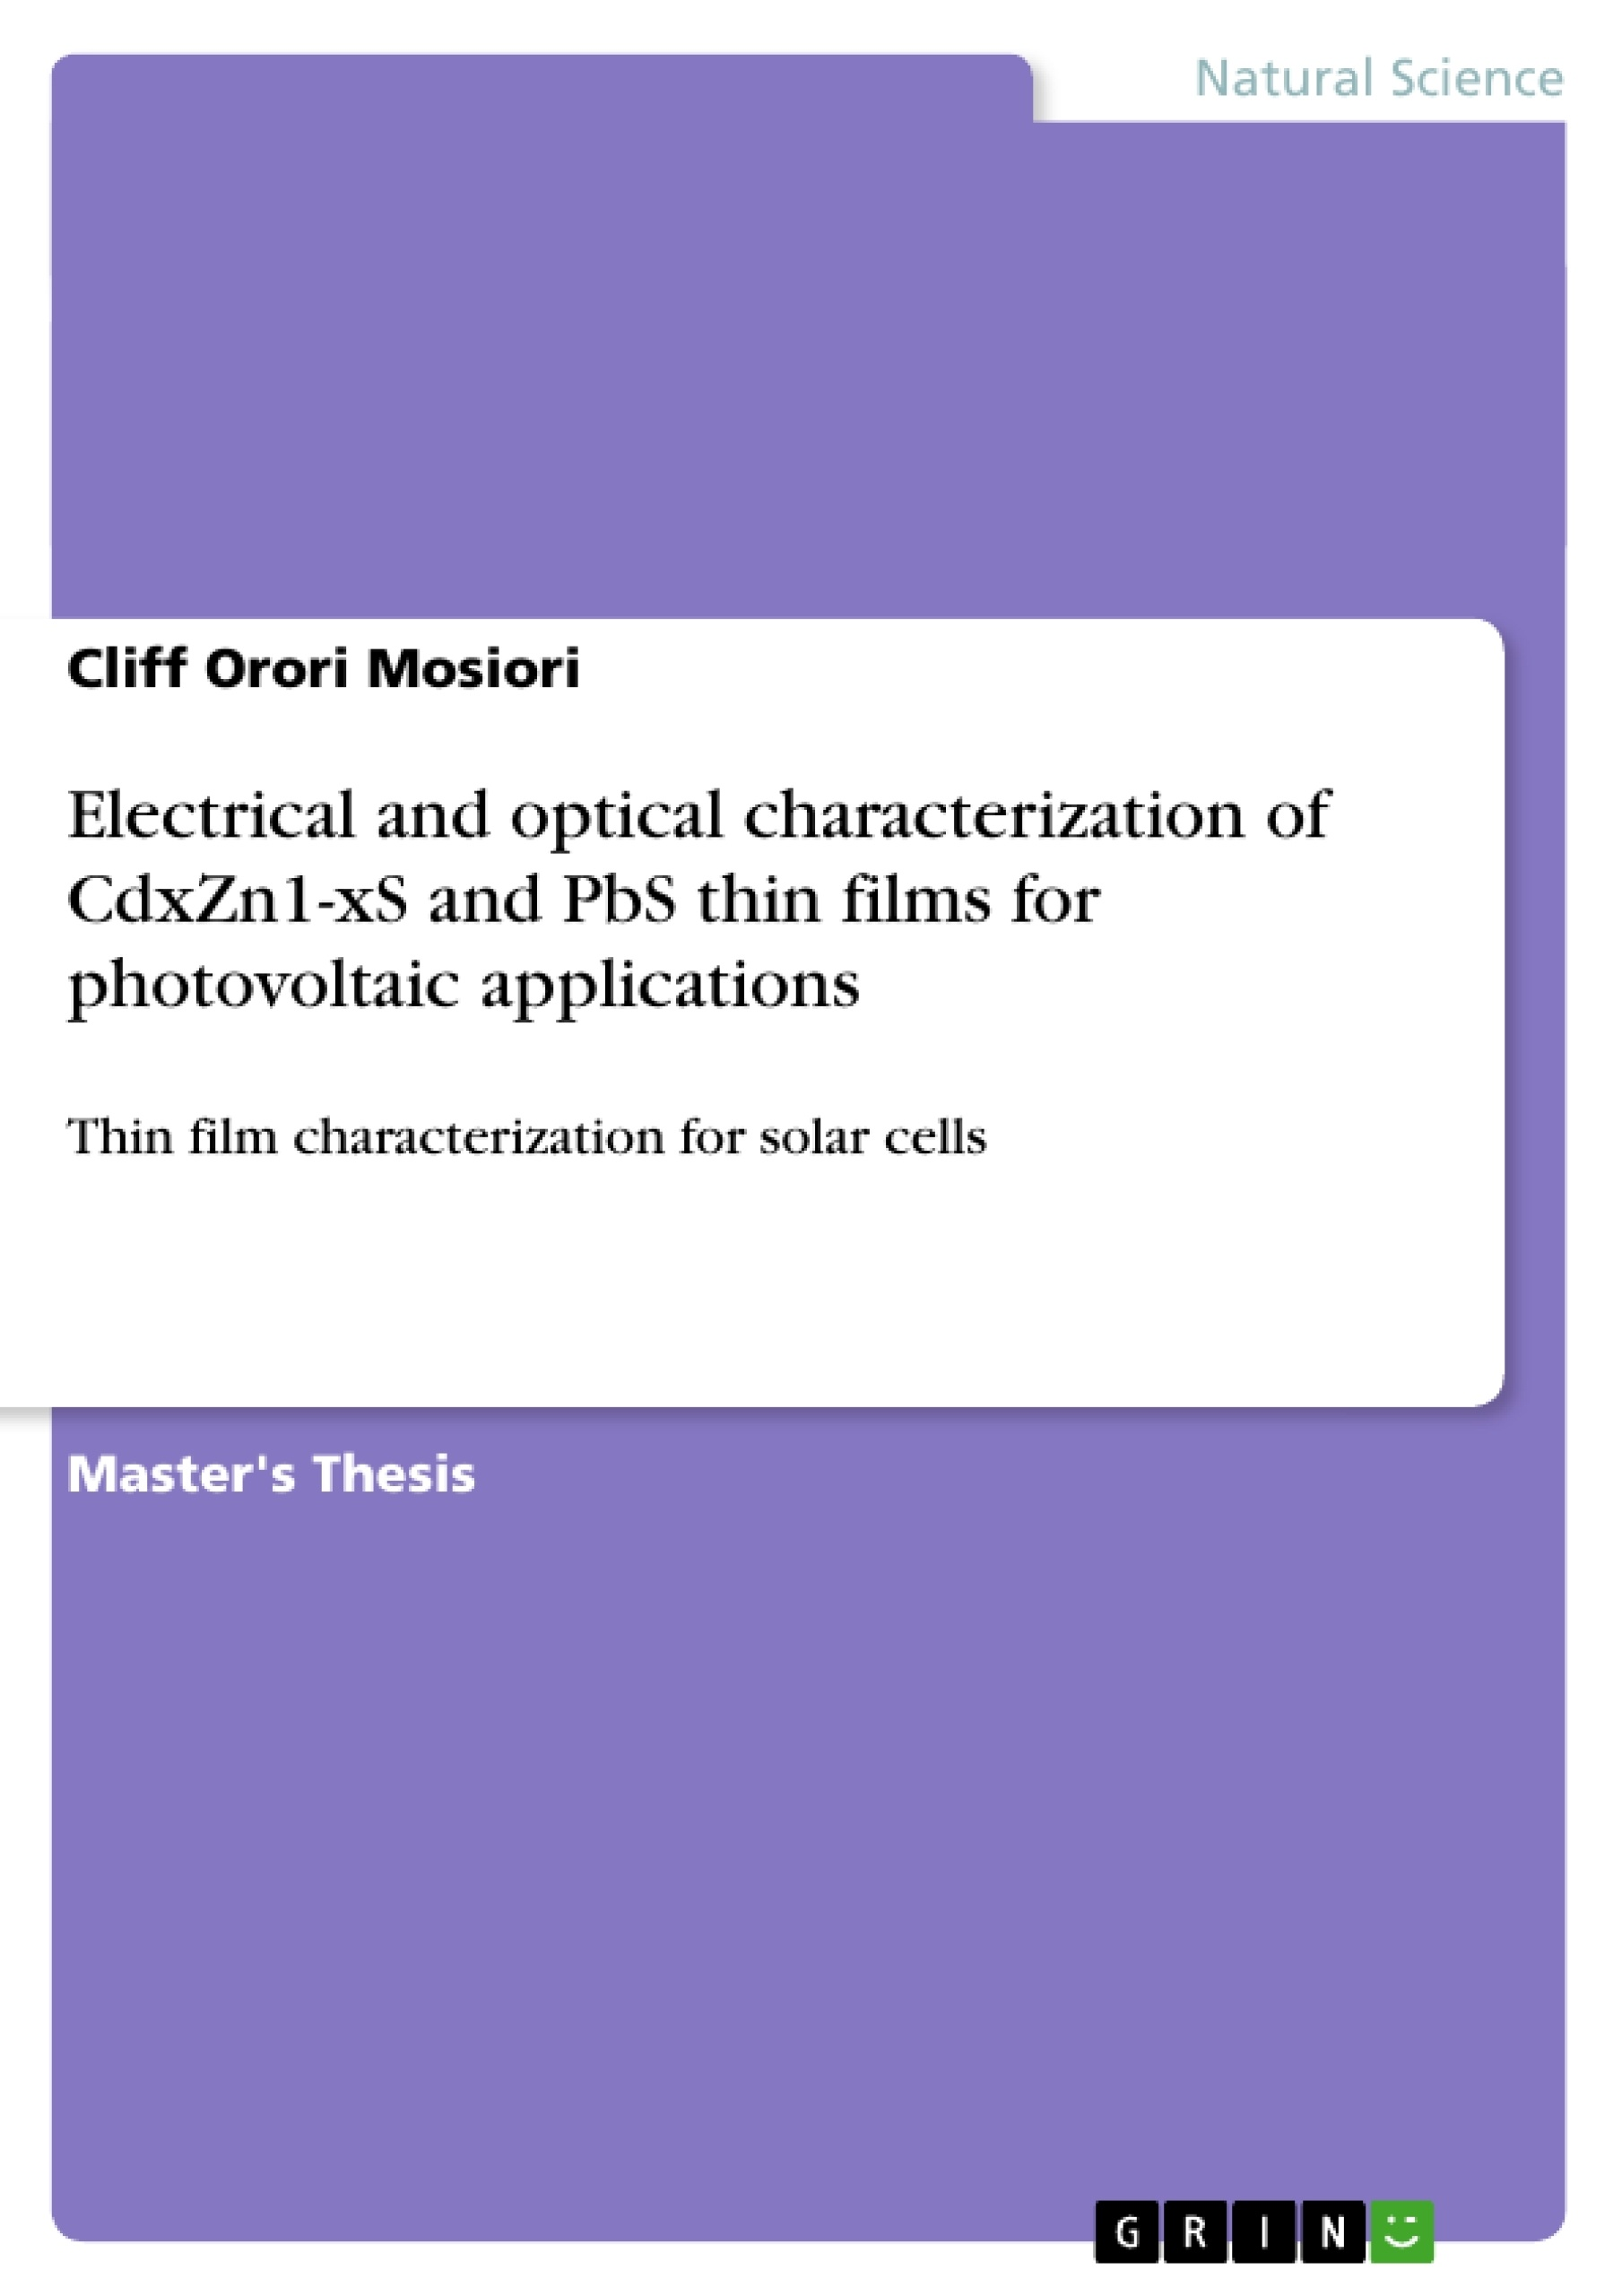 Title: Electrical and optical characterization of CdxZn1-xS and PbS thin films for photovoltaic applications